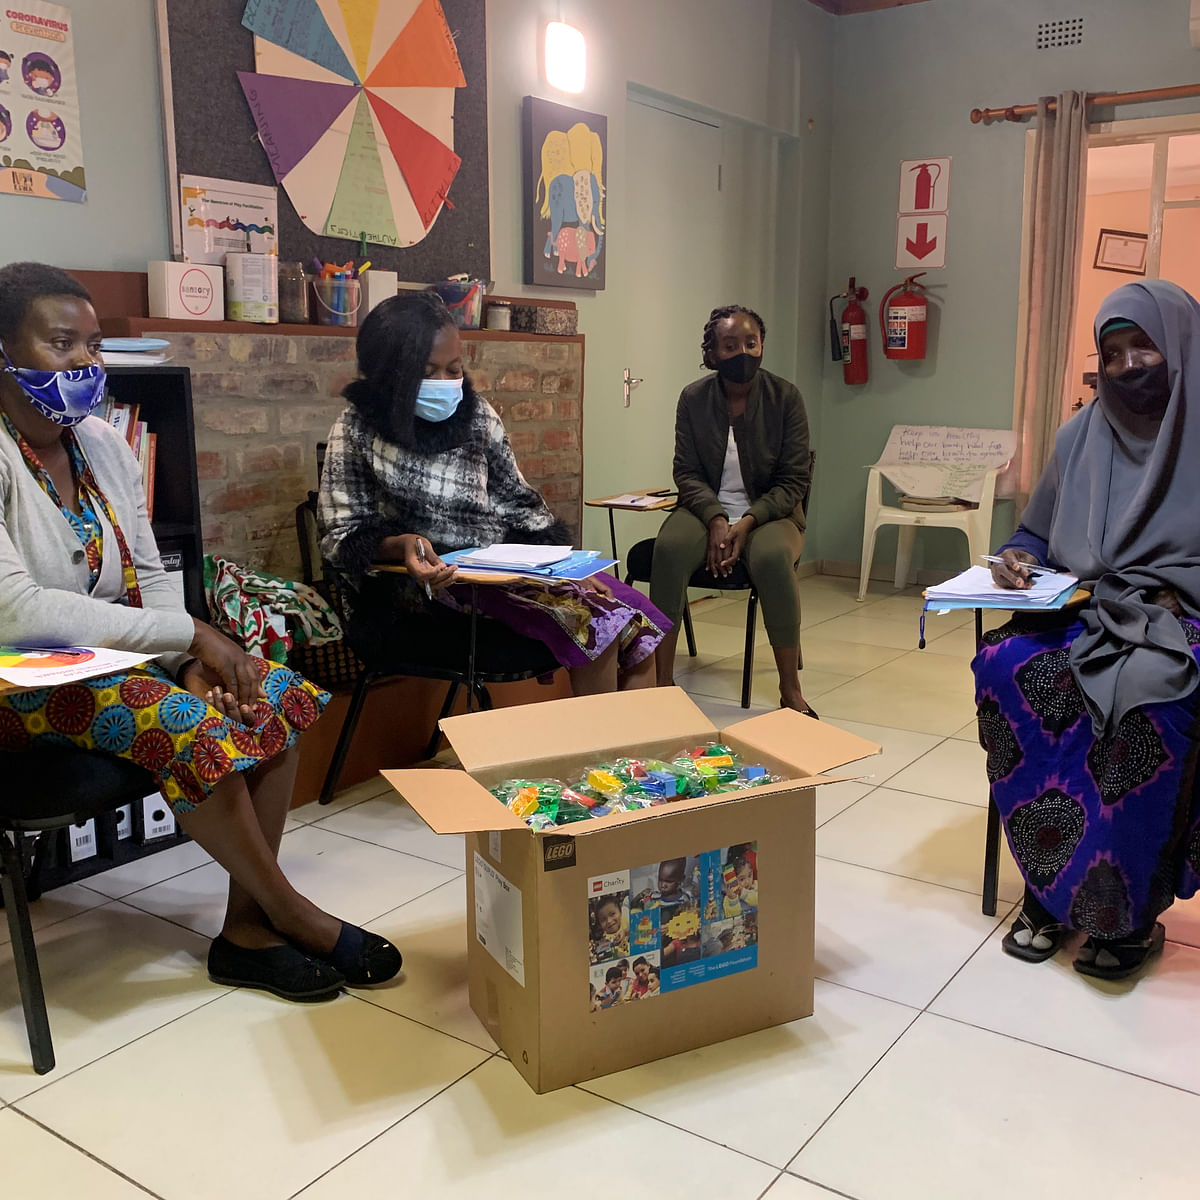 Learn To Play Tackles Injustice & Establishes Playgroup in Dukwi